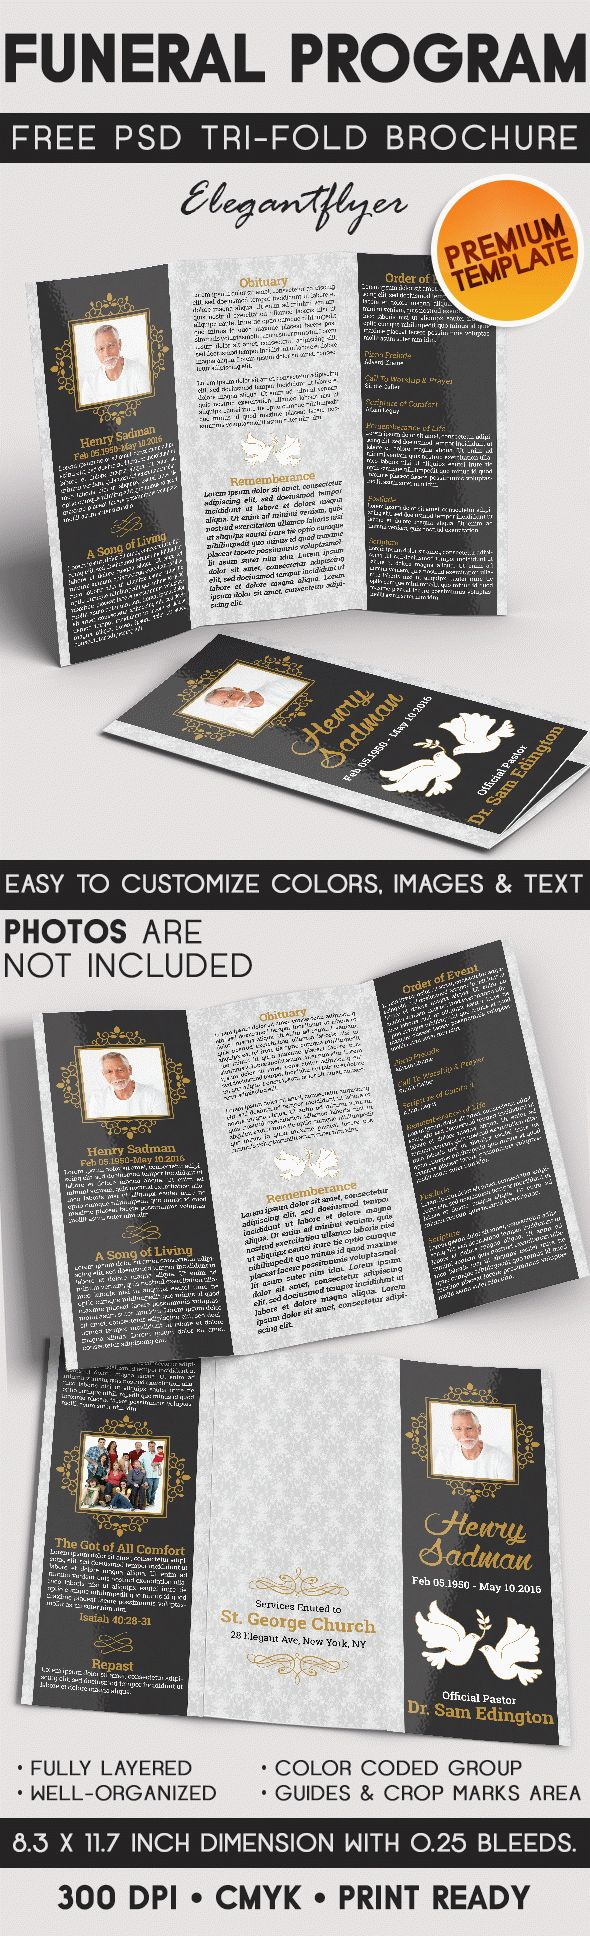 Tri fold brochure for funeral program by elegantflyer for Program brochure templates